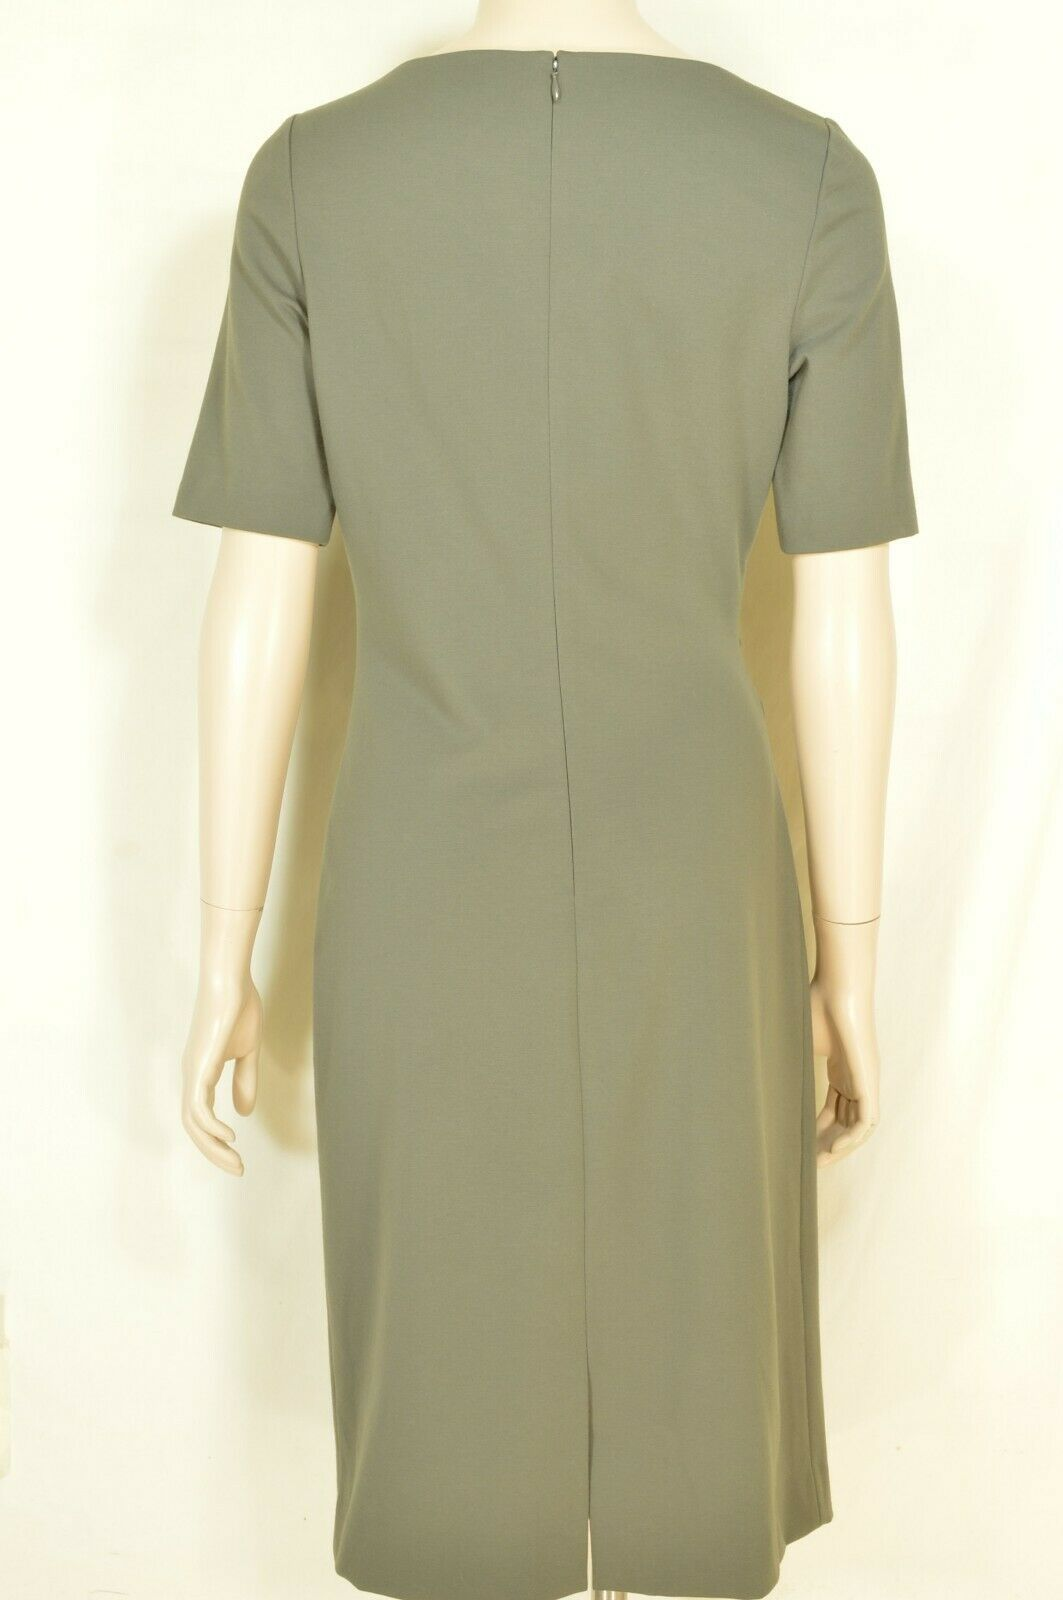 Lafayette 148 New York dress SZ 6 green gray short sleeves ruched on side